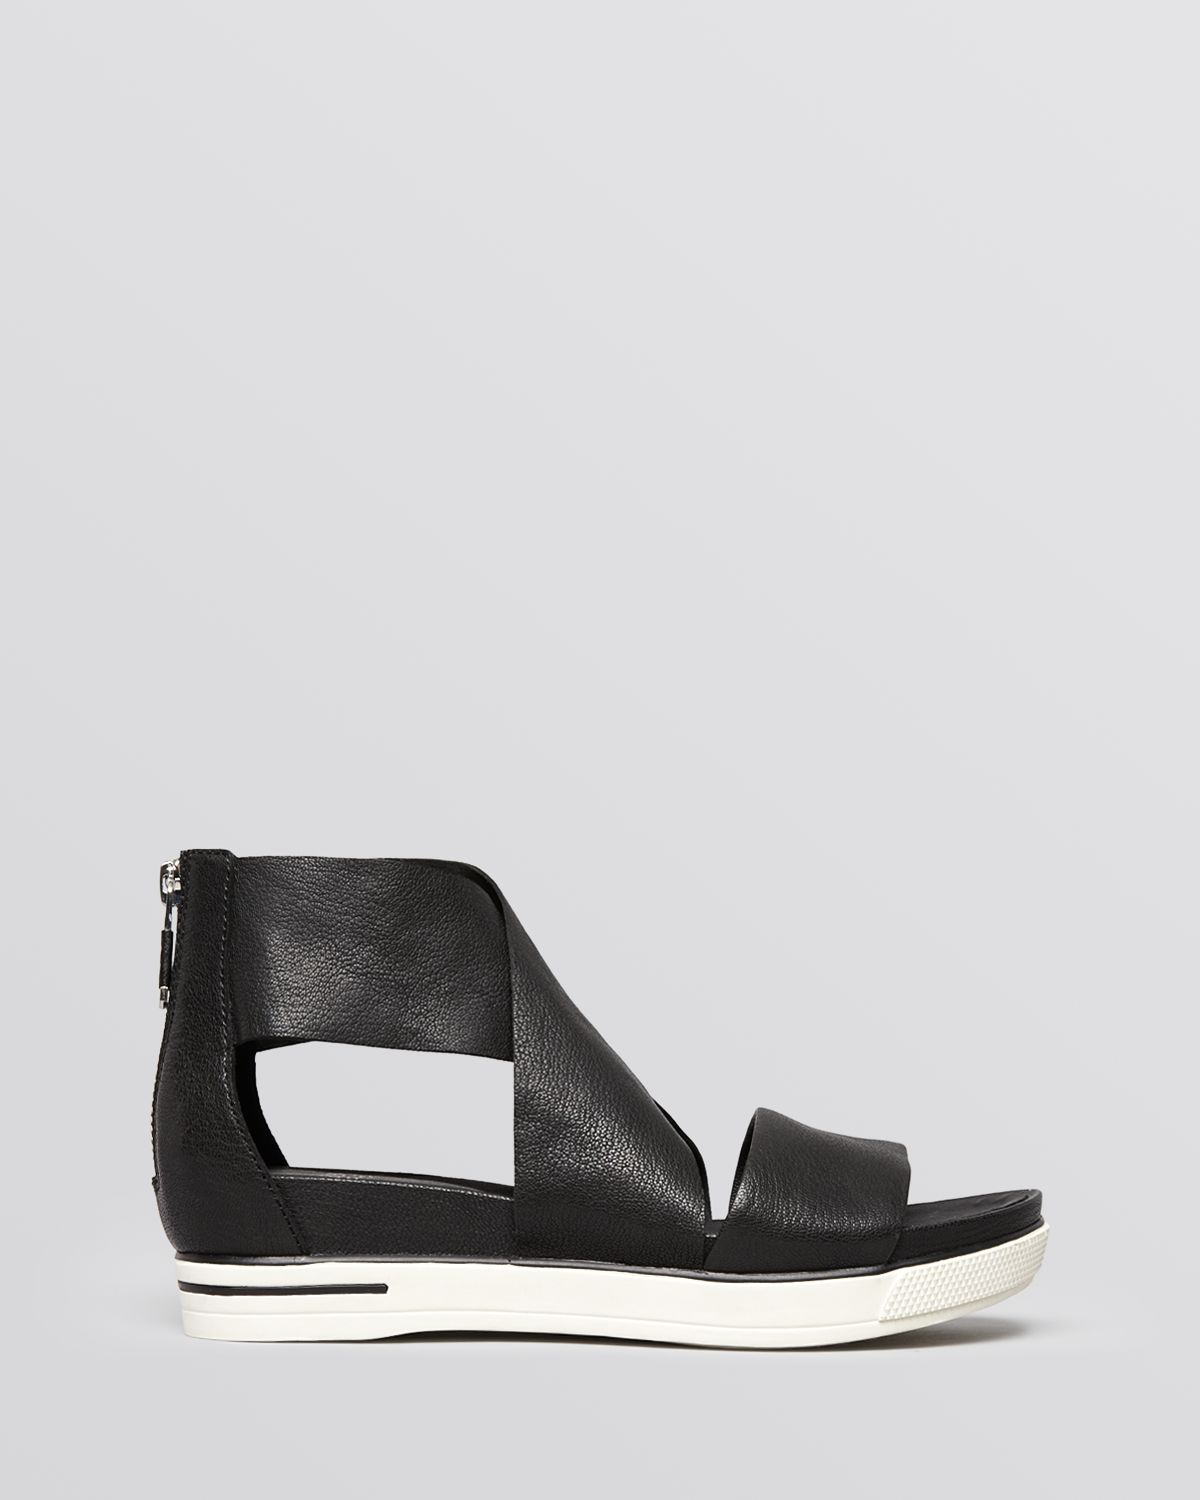 1f13e39c4ac4 Gallery. Previously sold at  Bloomingdale s · Women s Eileen Fisher  Platform Women s Wedge ...